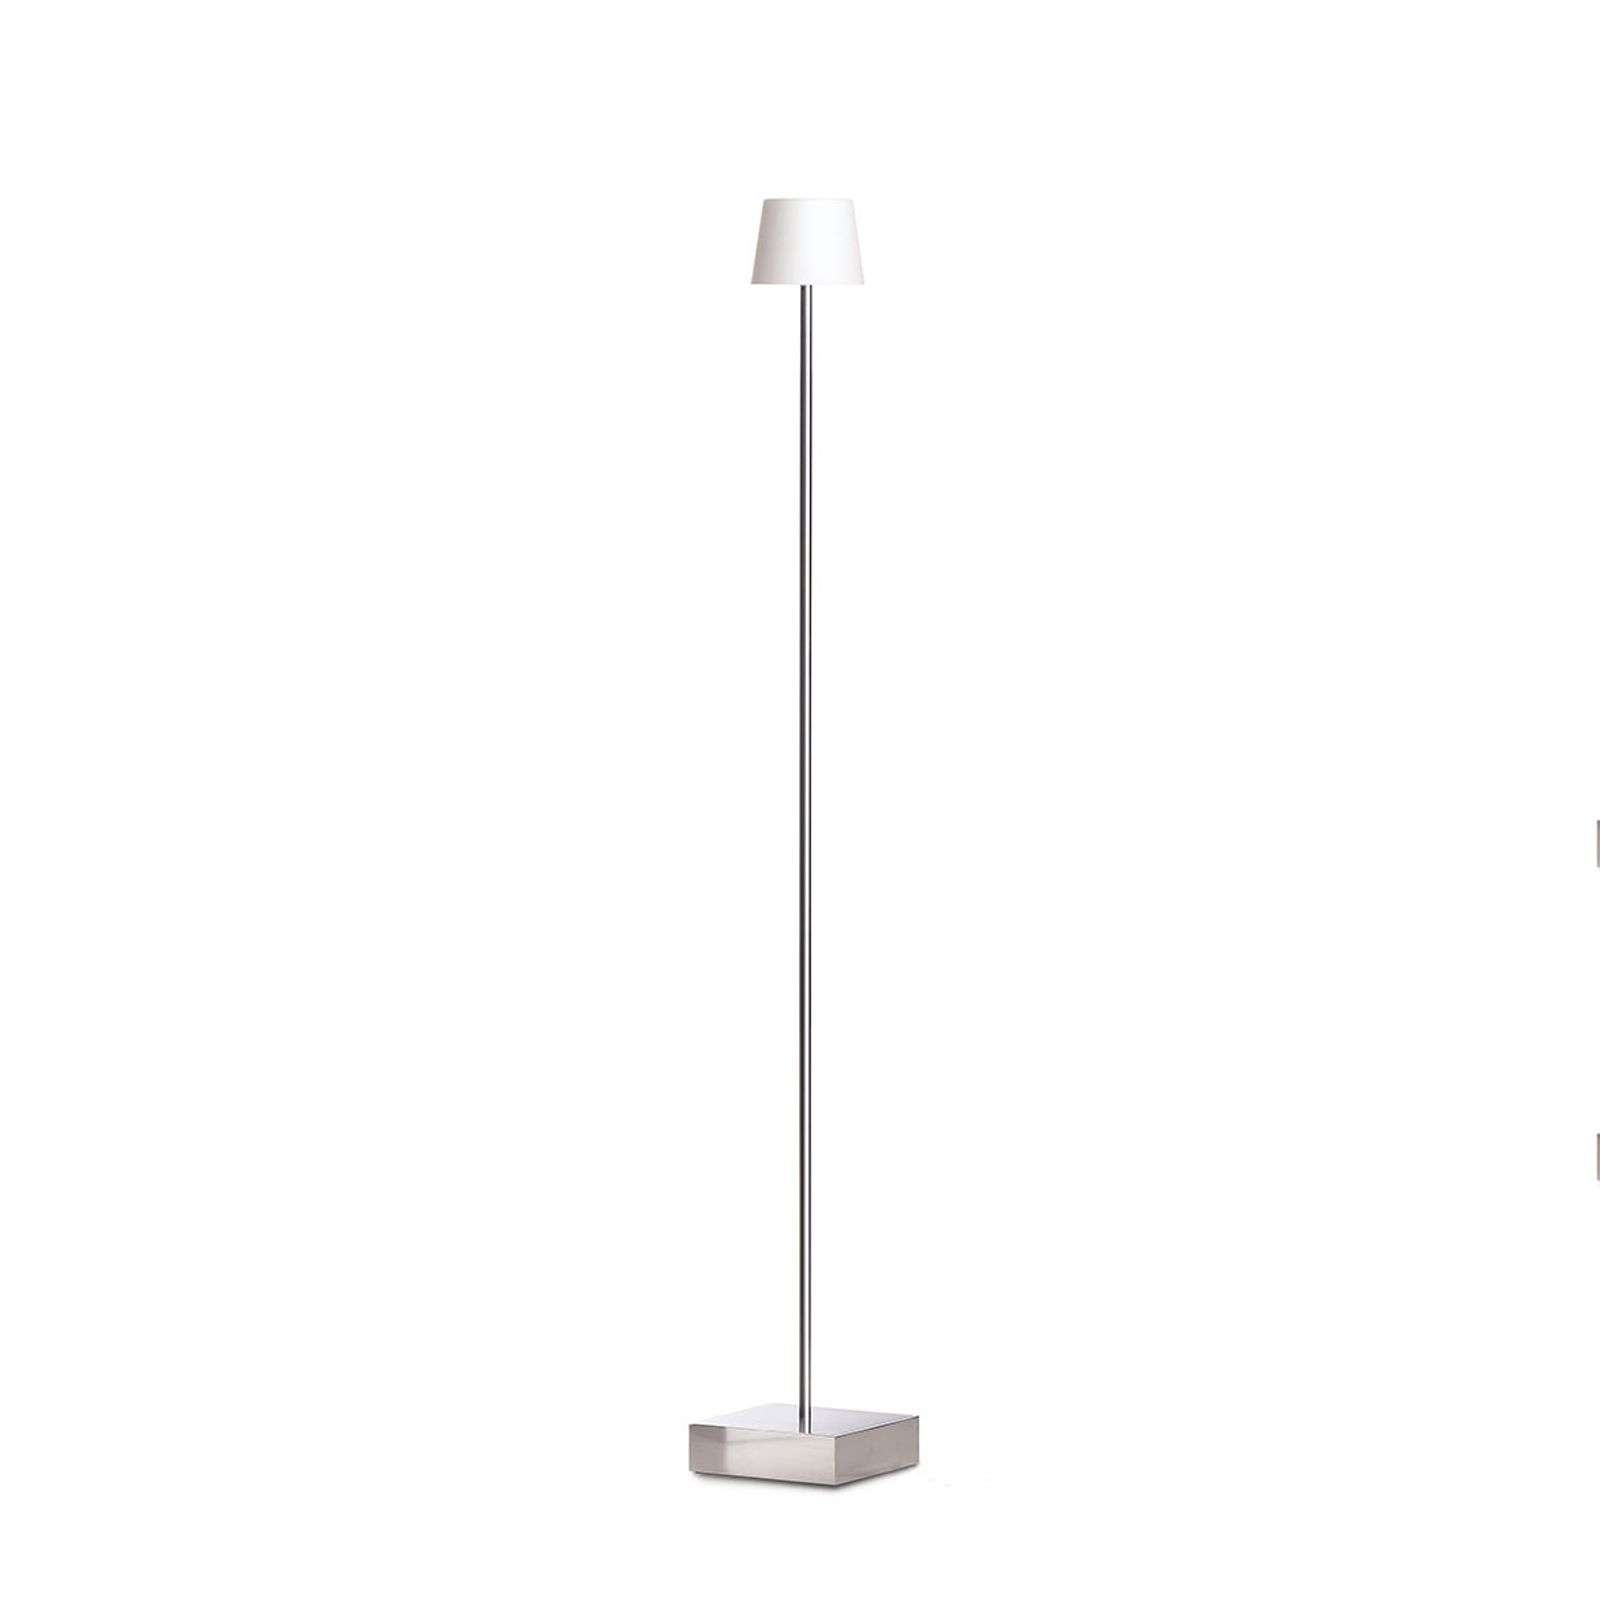 Lampadaire de designer intemporel Cut, 105 cm